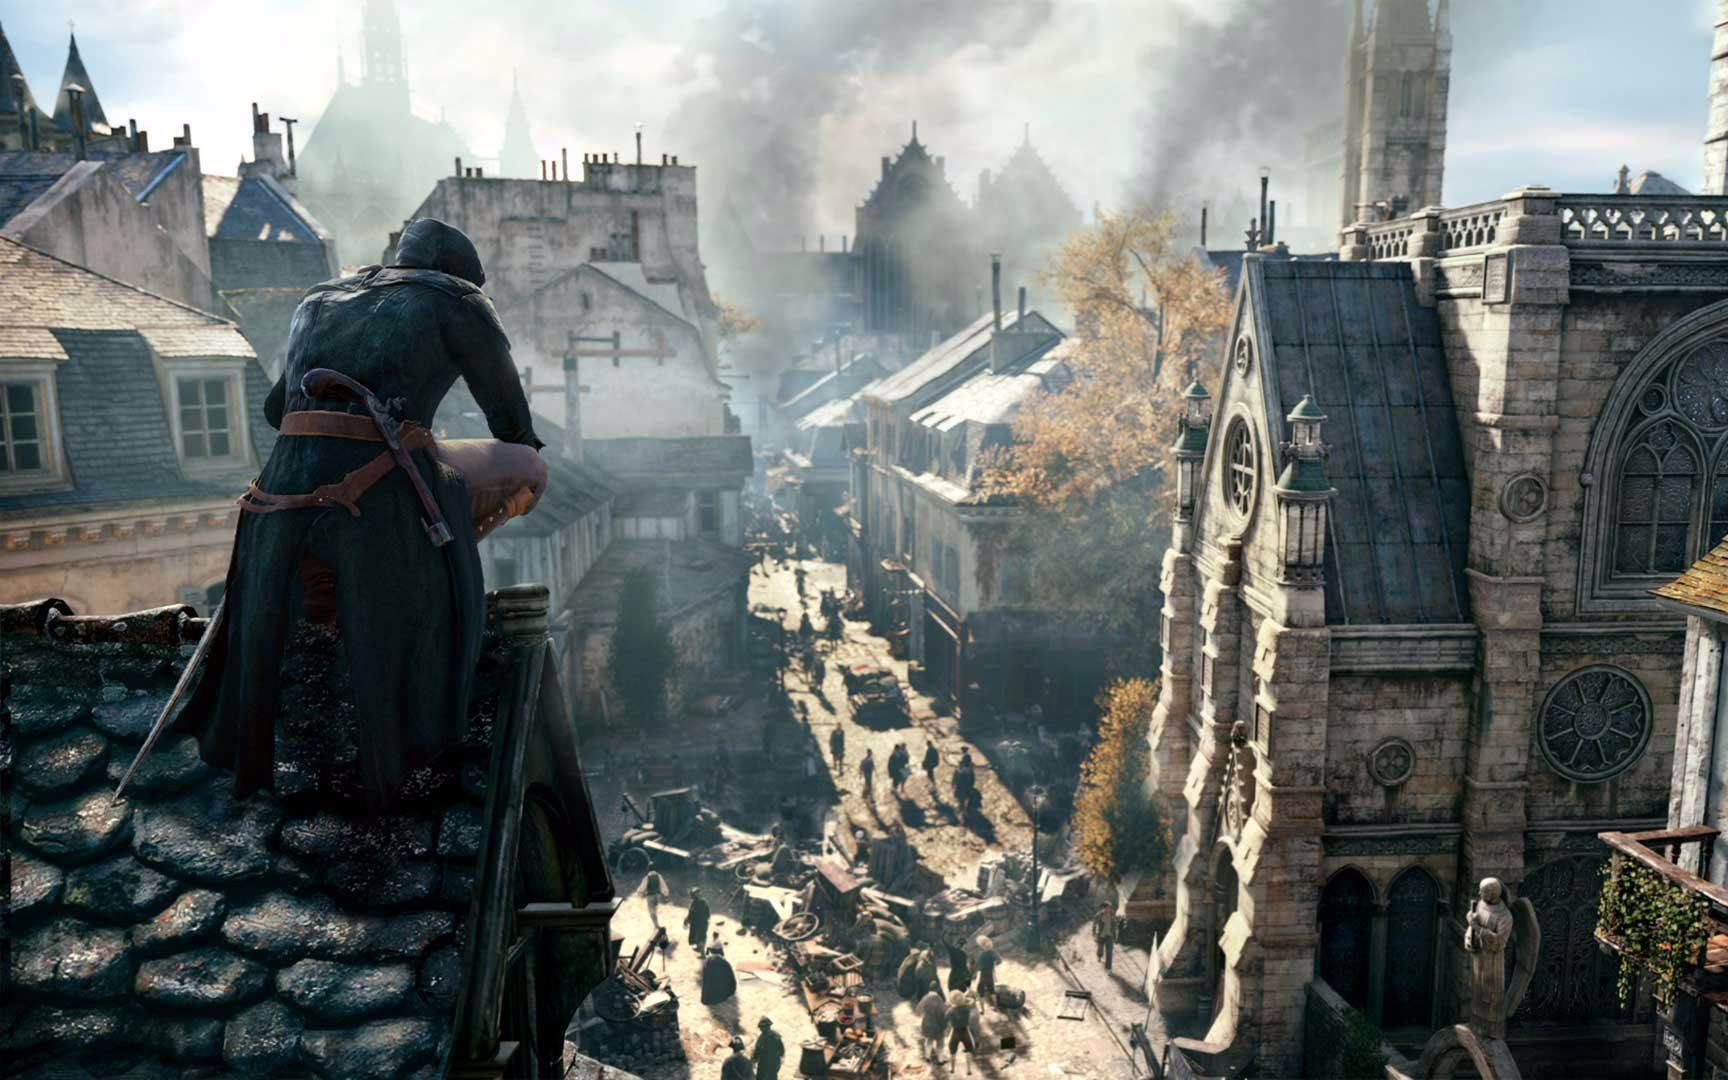 Assassin's Creed Unity, Assassin's Creed Odyssey, Paris, Assassin's Creed IV: Black Flag, Video Games, Assassin's Creed, , Ubisoft, Arno Dorian, Gamescom, assassin's creed unity paris, Action-adventure game, Pc game, Strategy video game, Games, Cg artwork, World, Illustration, Screenshot, Digital compositing, Adventure game